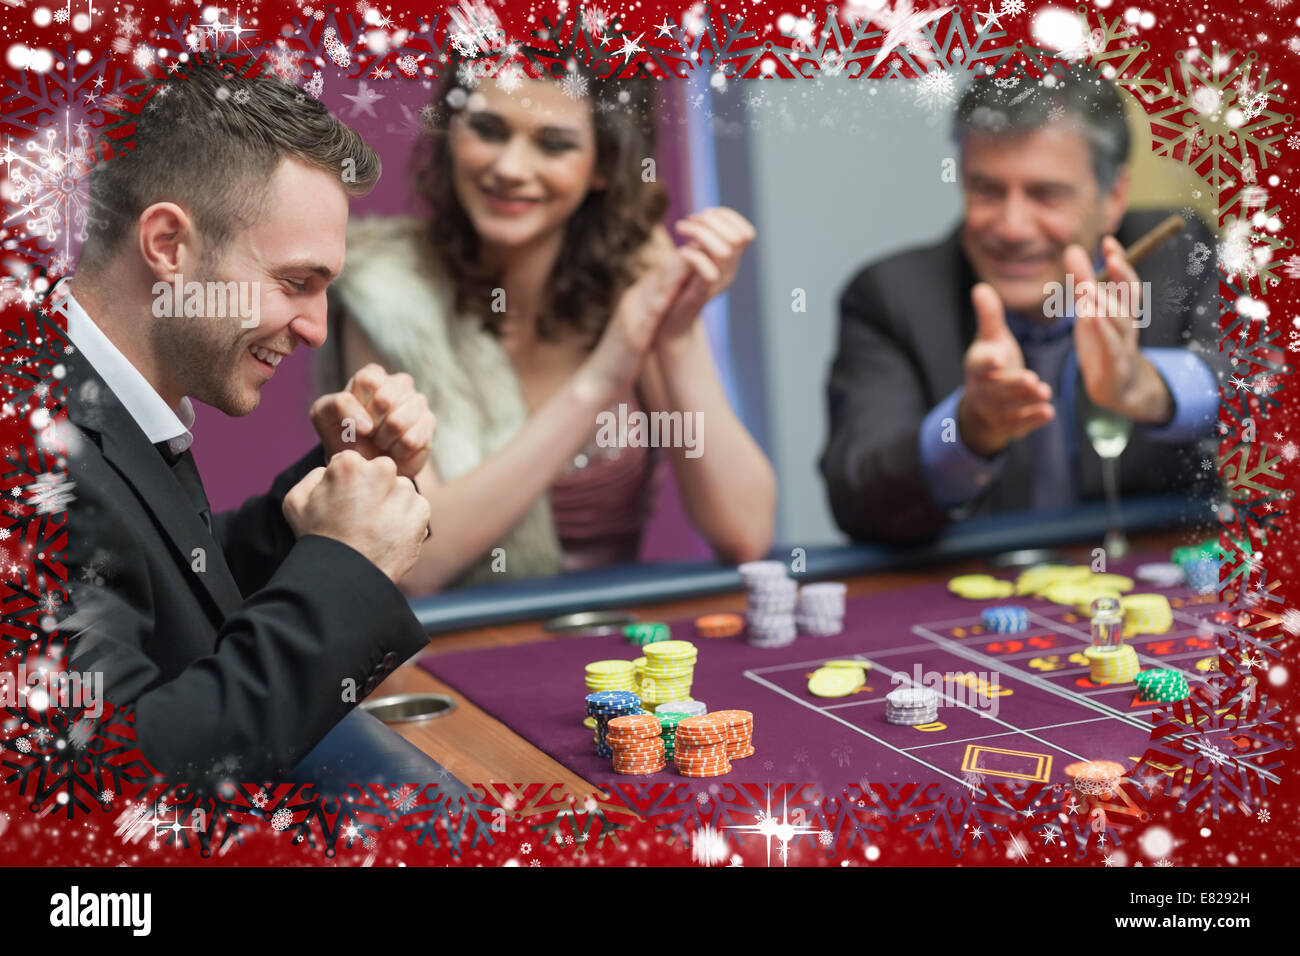 Composite image of people cheering man at craps game - Stock Image